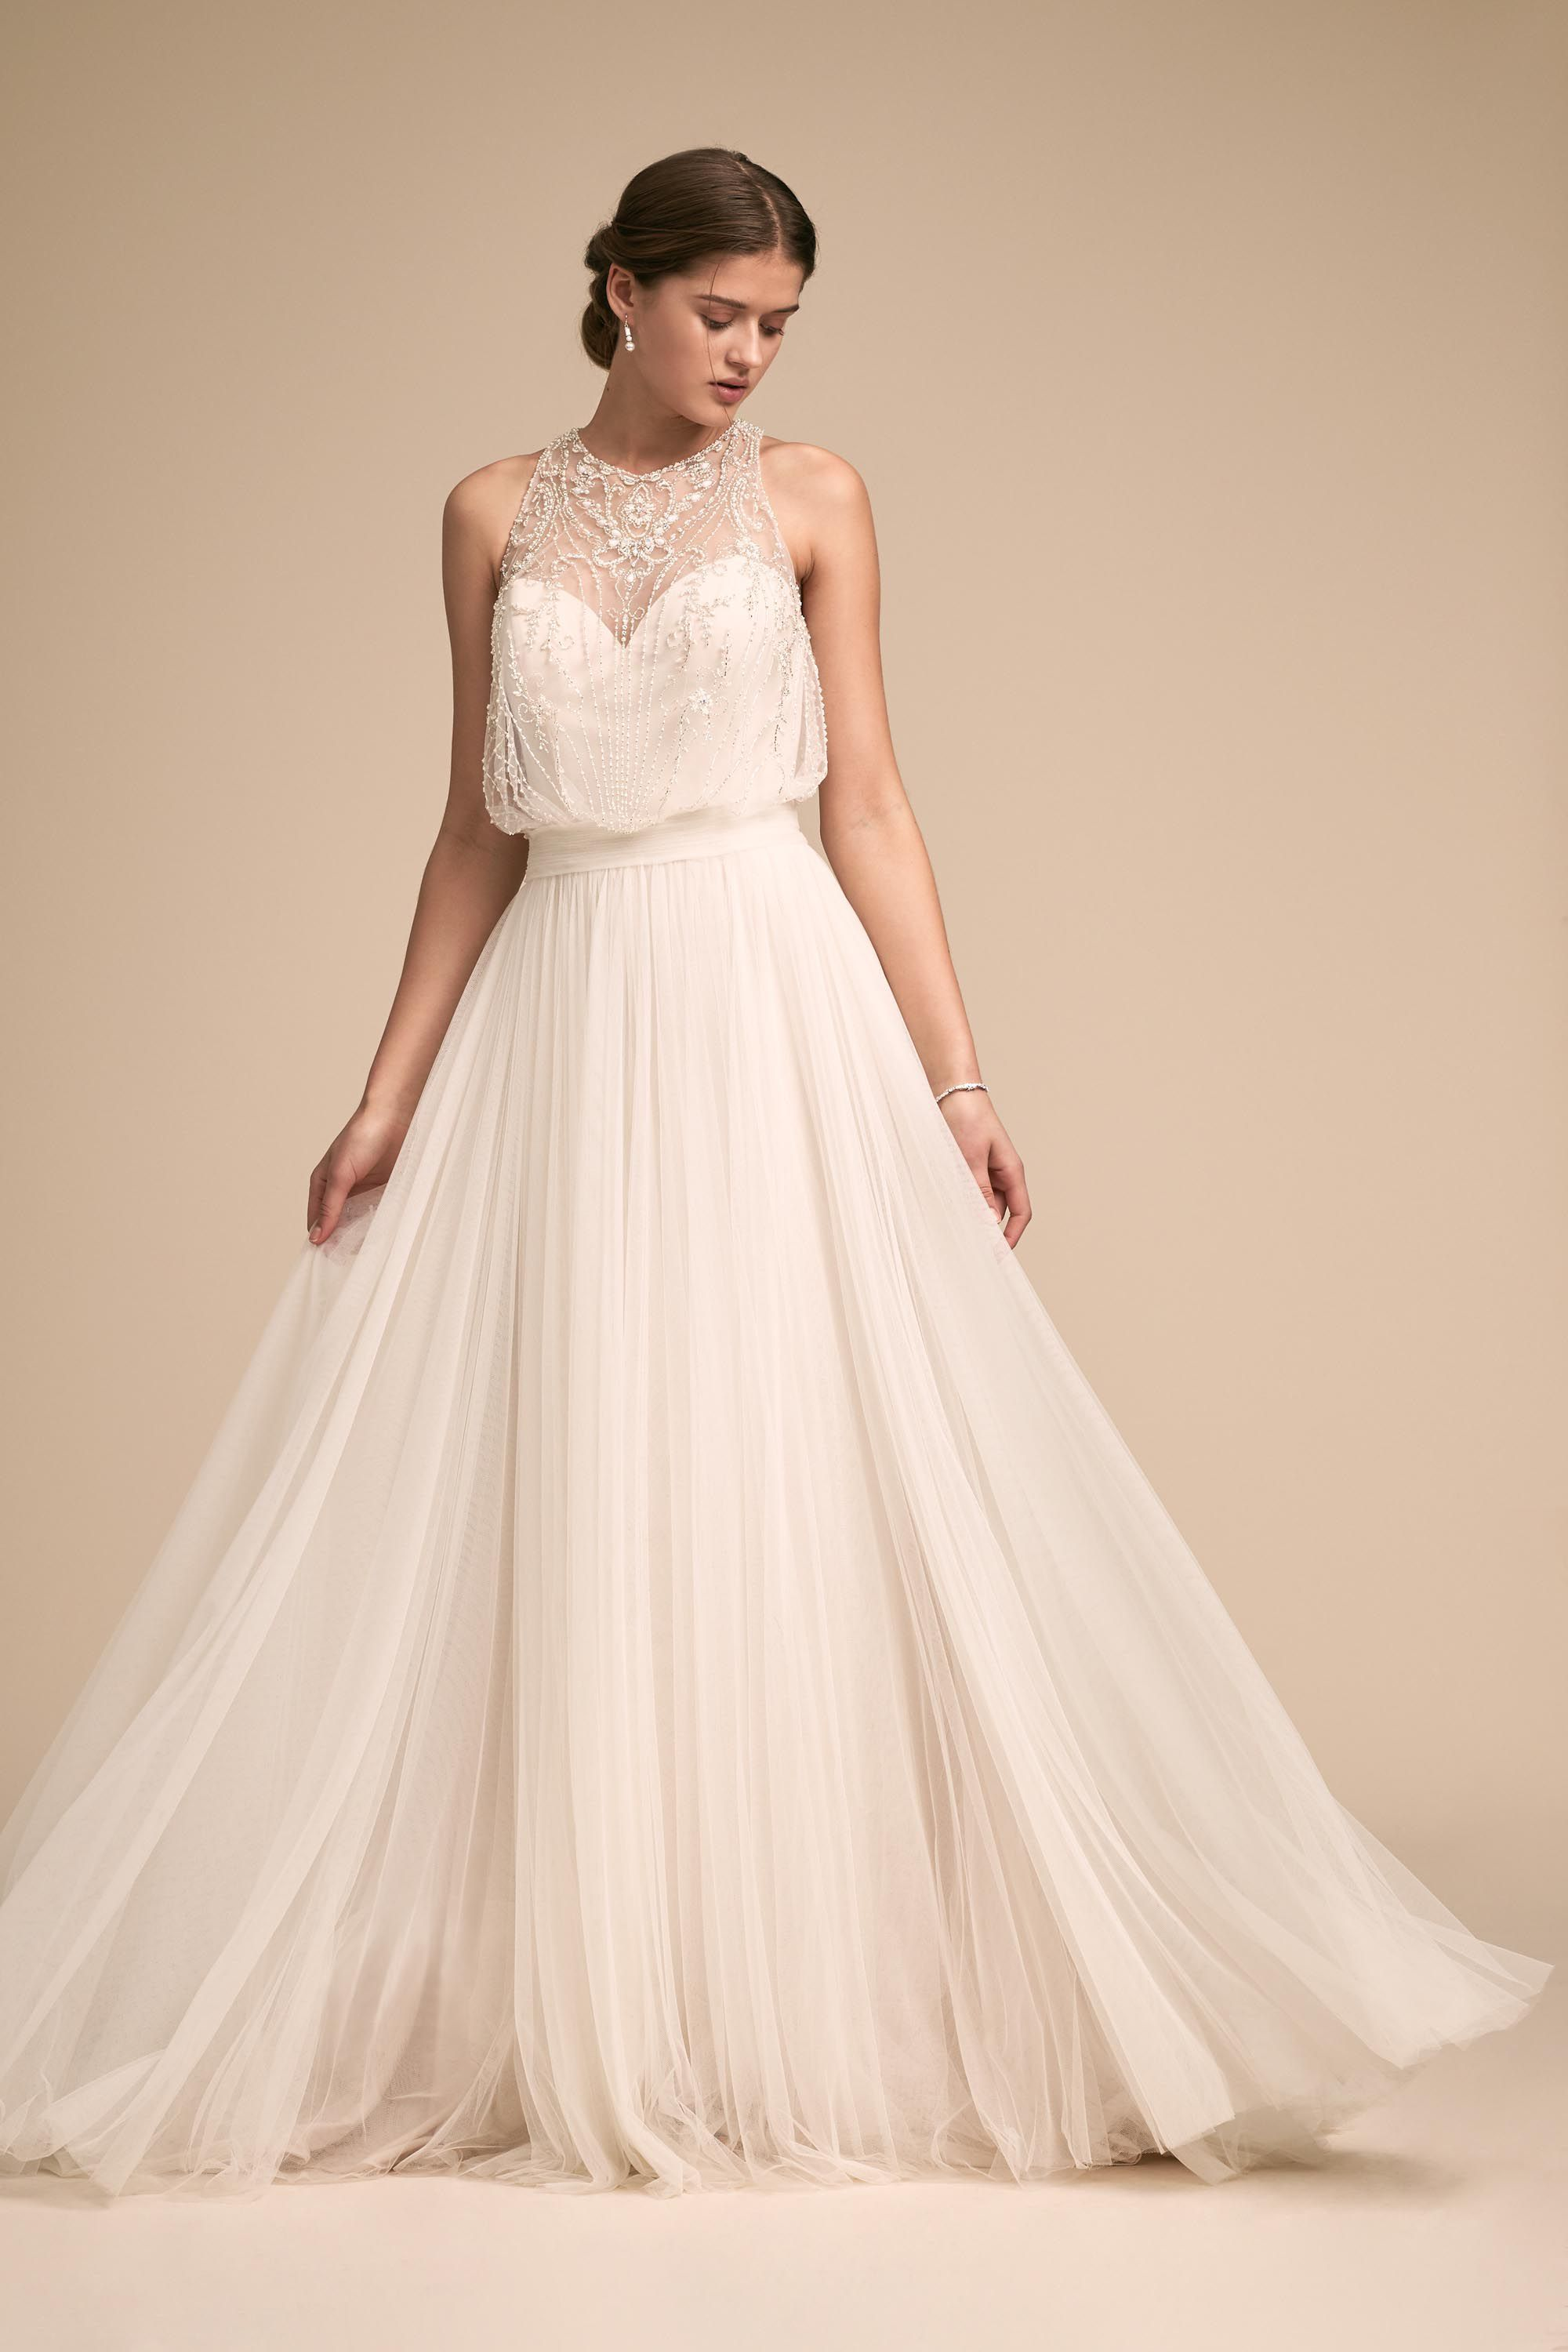 Bhldnus whispers u echoes lovespell gown in ivory in bhldn